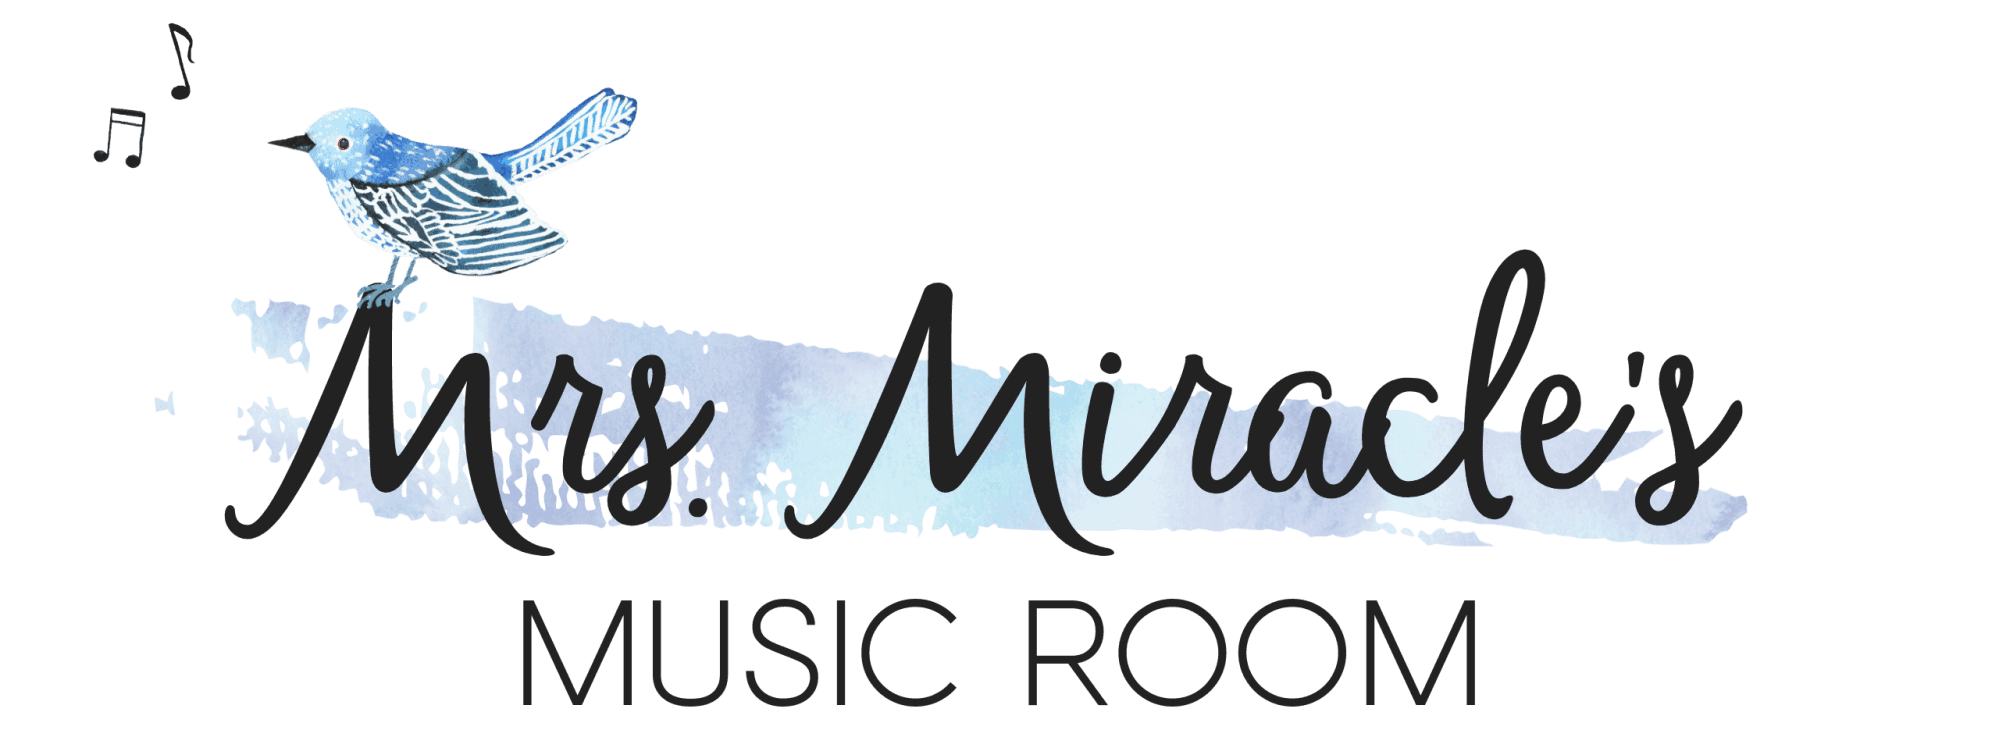 hight resolution of Music Lessons During School Closures - Mrs. Miracle's Music Room